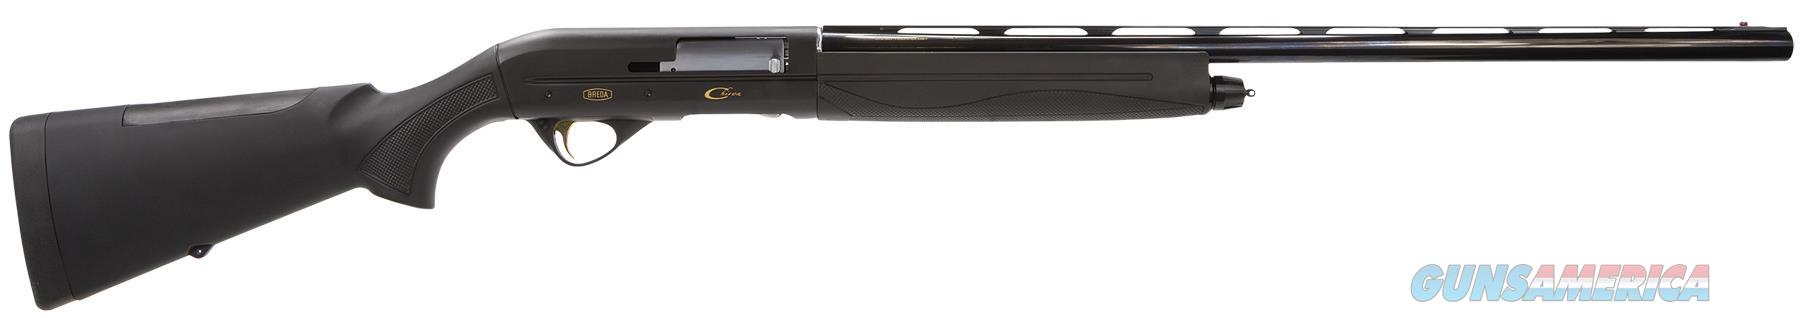 "BREDA BRE53 CHIRON SEMI-AUTOMATIC 12GA 24"" 3+1 3"" SYNTHETIC BLACK STOCK BLUED BRE53  Guns > Shotguns > B Misc Shotguns"